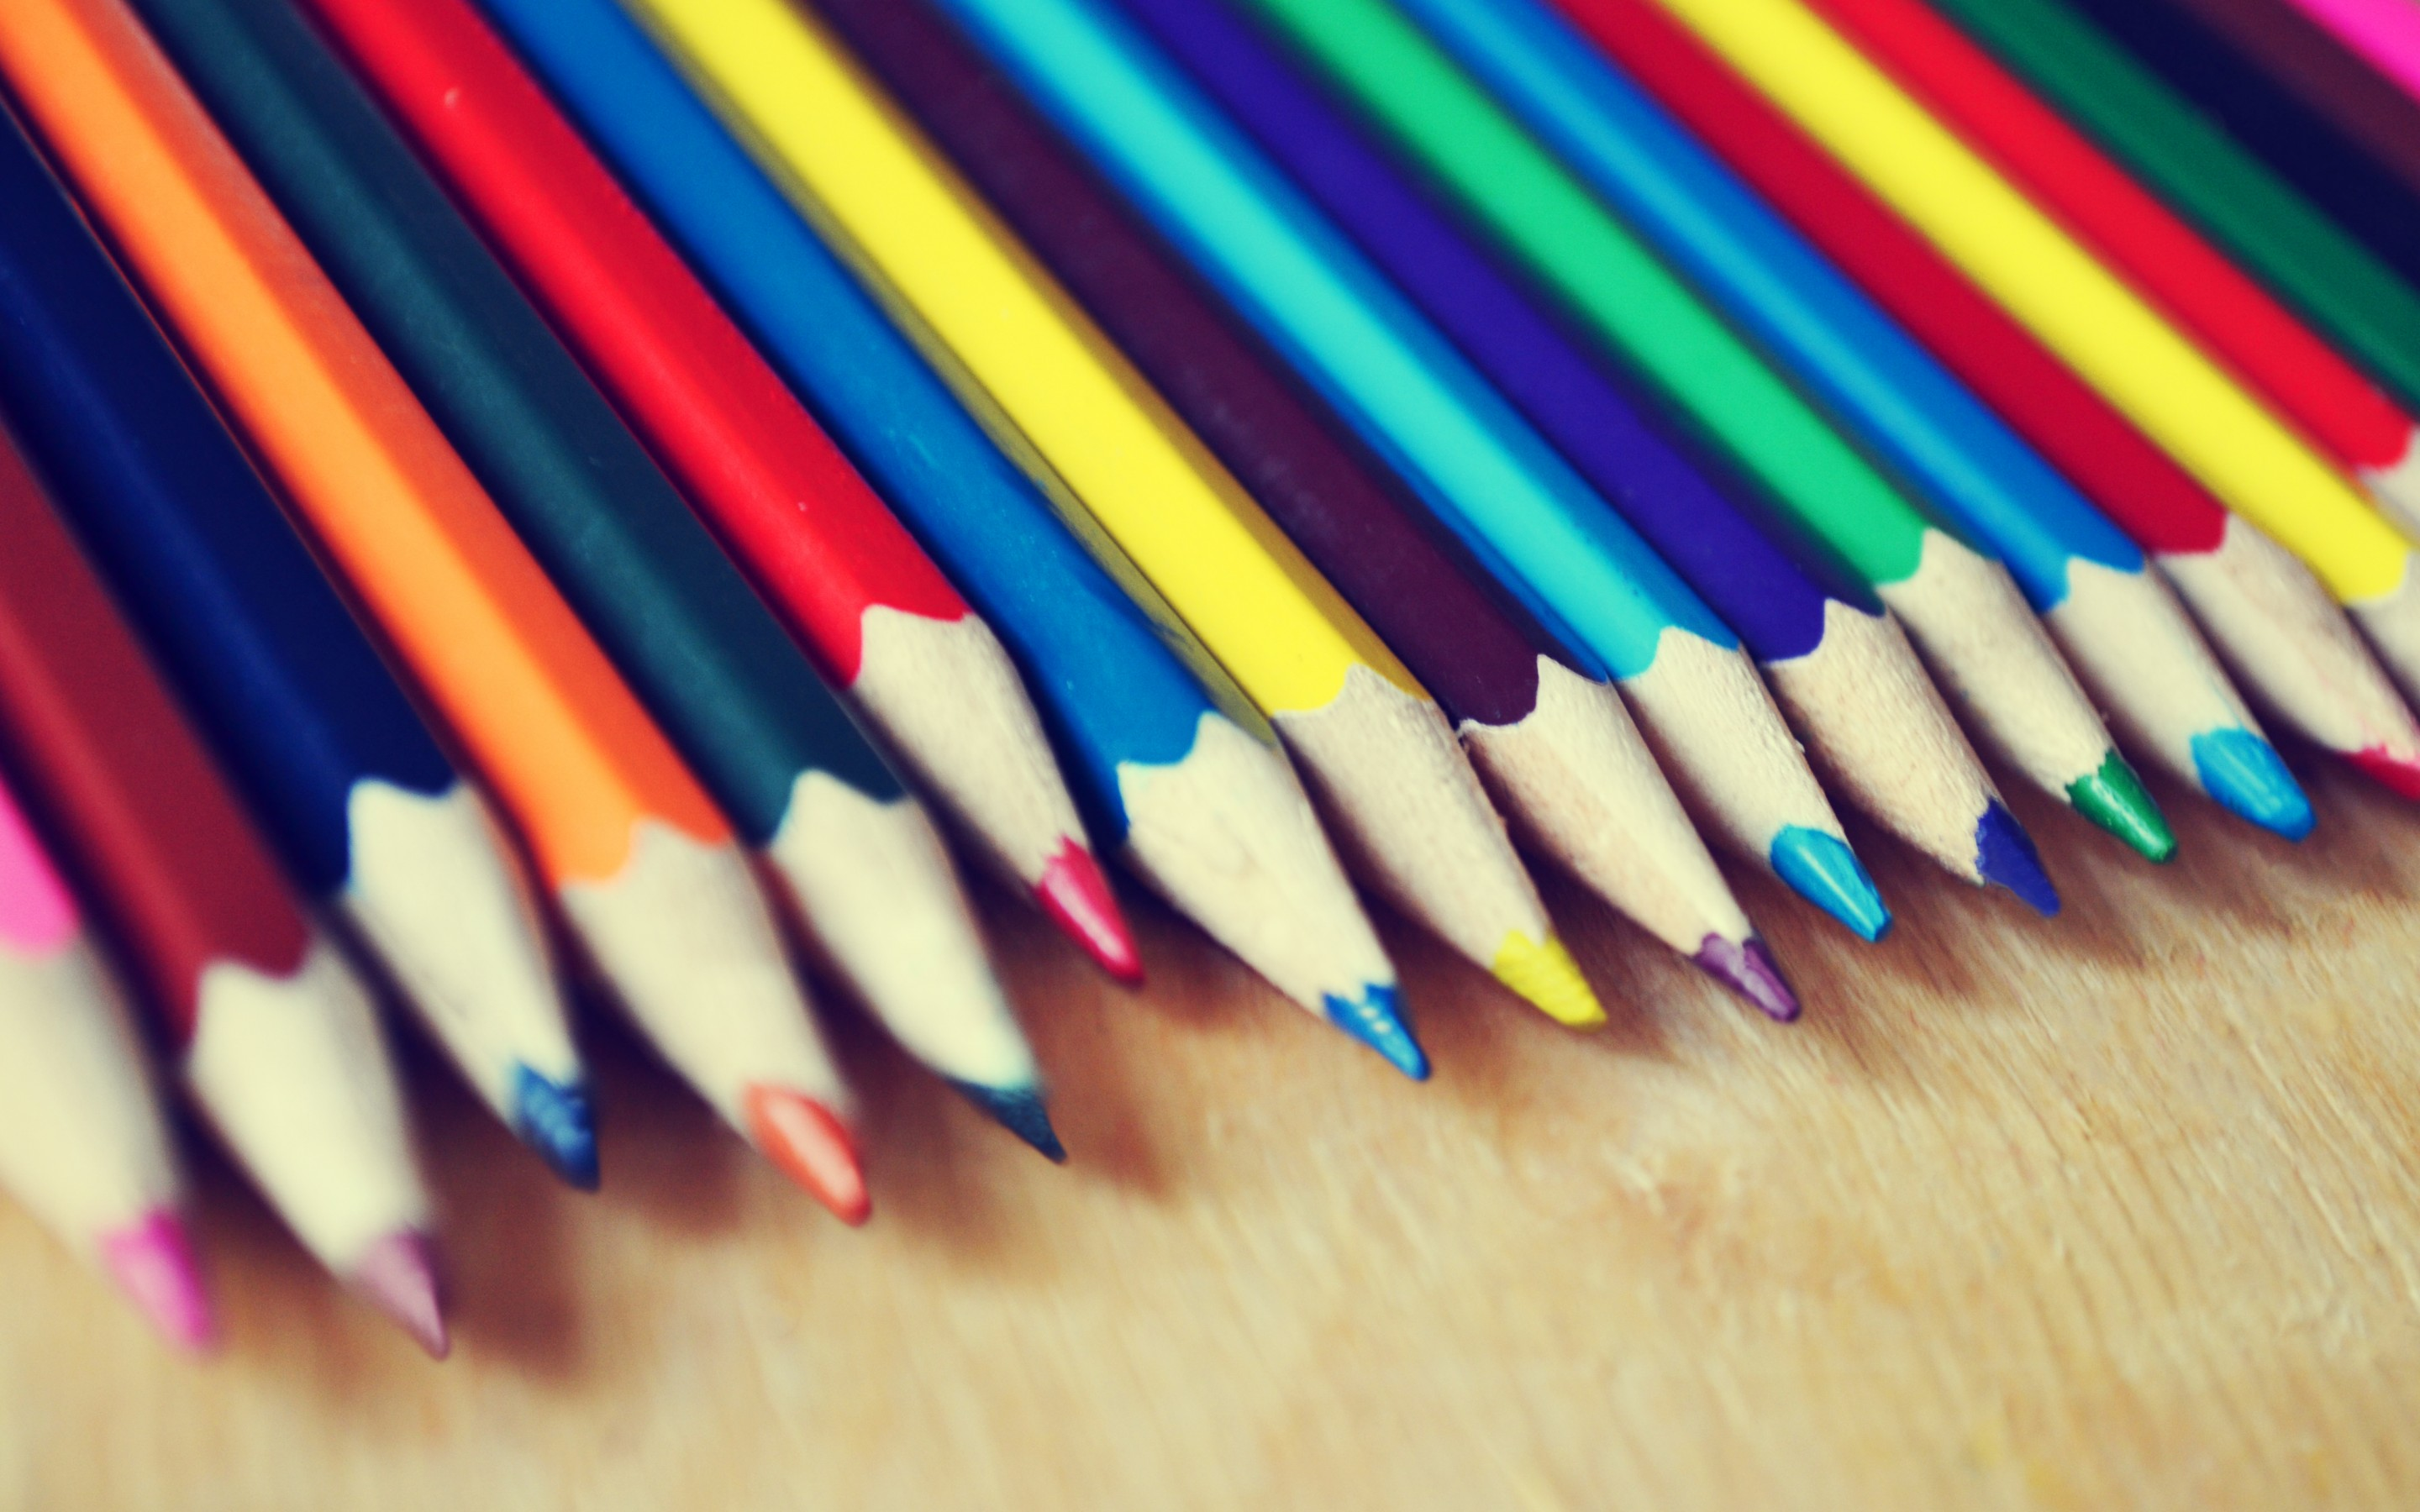 187 pencil hd wallpapers | background images - wallpaper abyss, Powerpoint templates